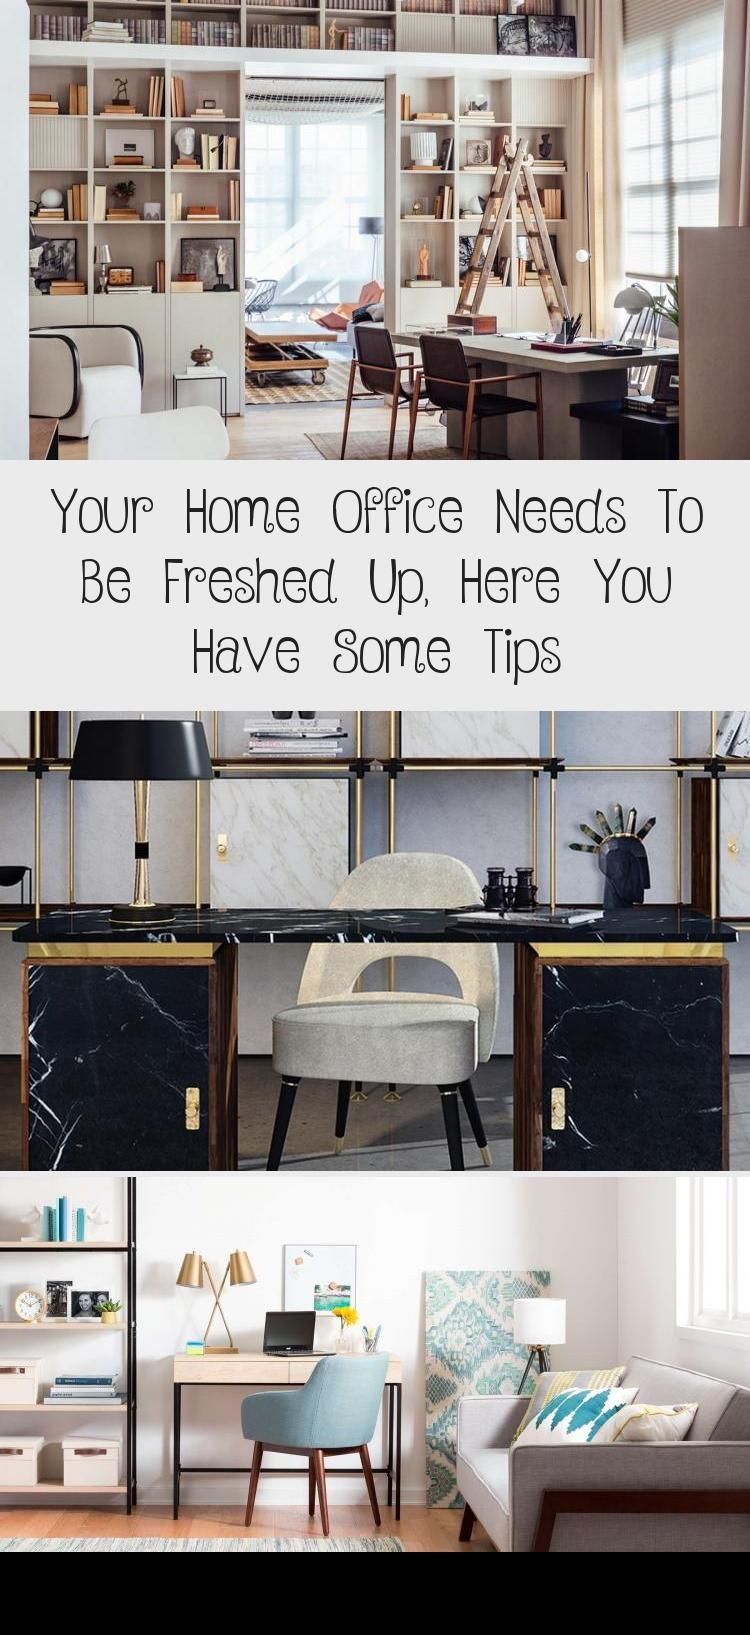 Your Home Office Needs To Be Freshed Up Here You Have Some Tips  İnformation Decor  Learning how to stay efficient and productive is one of the most important tasks of ou...